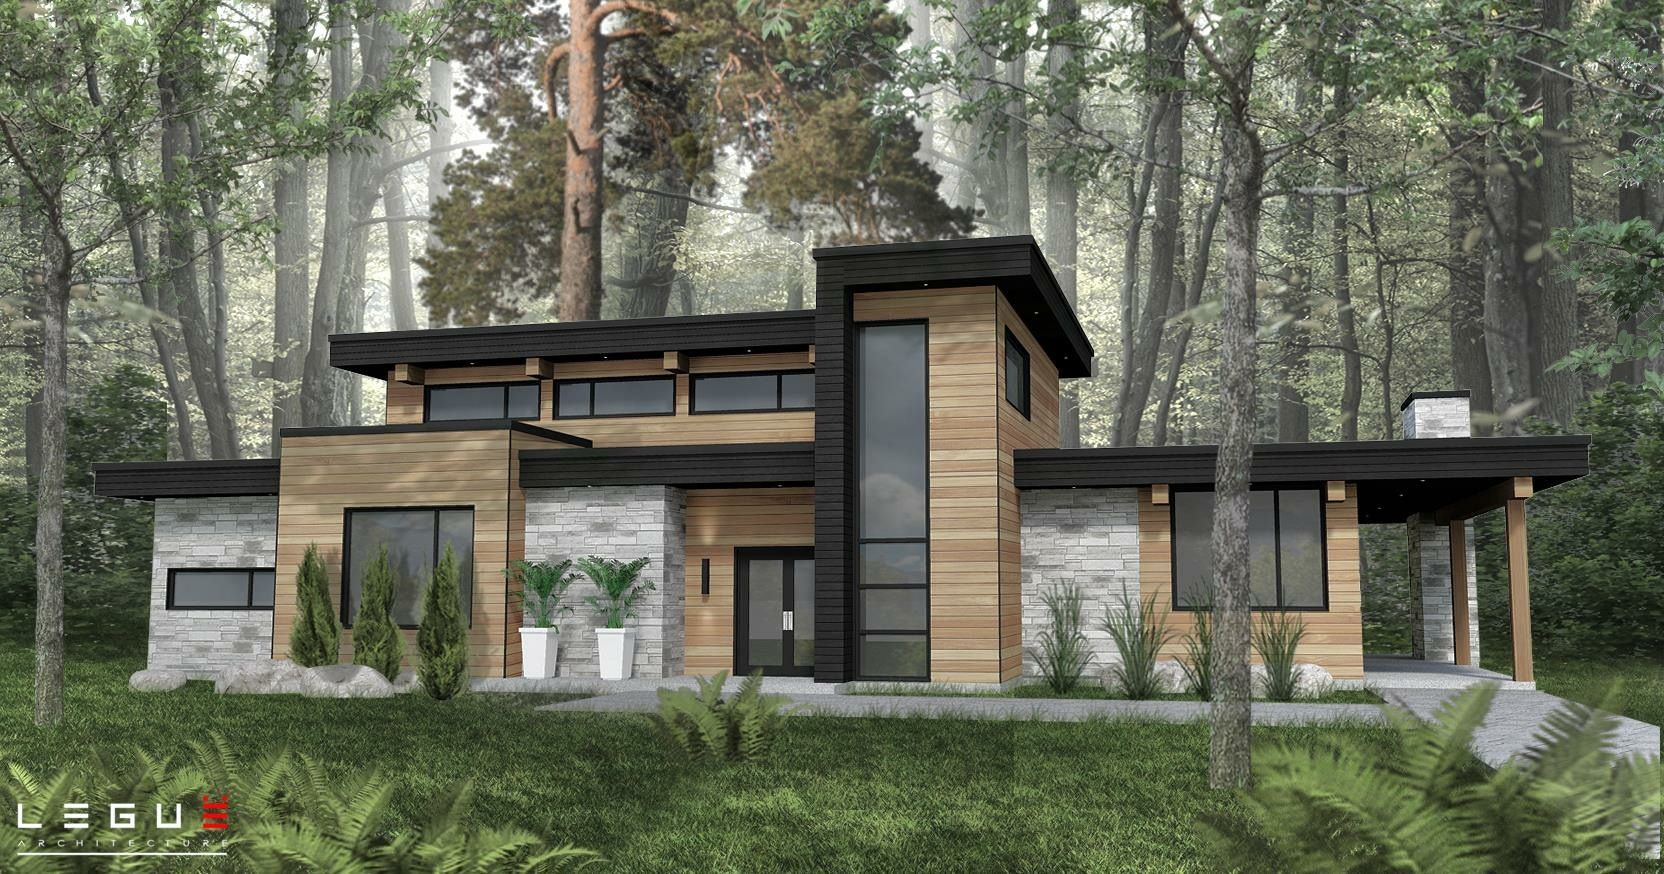 Pin By Supichai Vongpipunt On House In 2020 Modern Architecture House Modern House Design Architecture